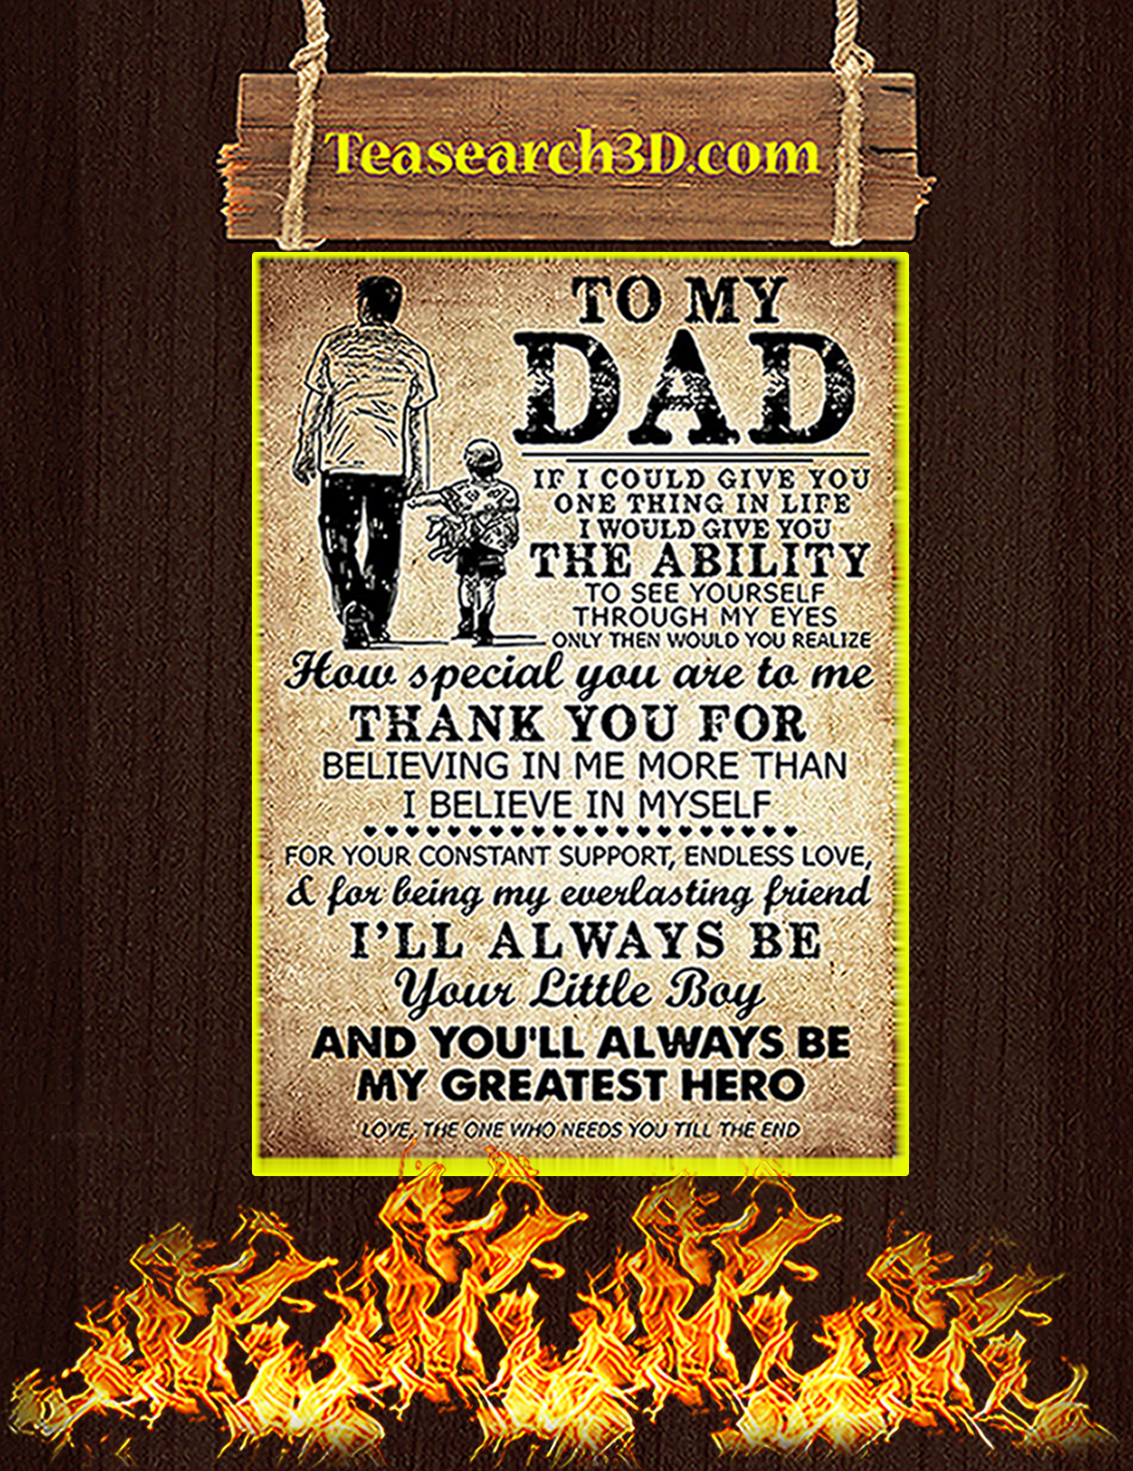 To my dad if i could give you one thing in life poster A3